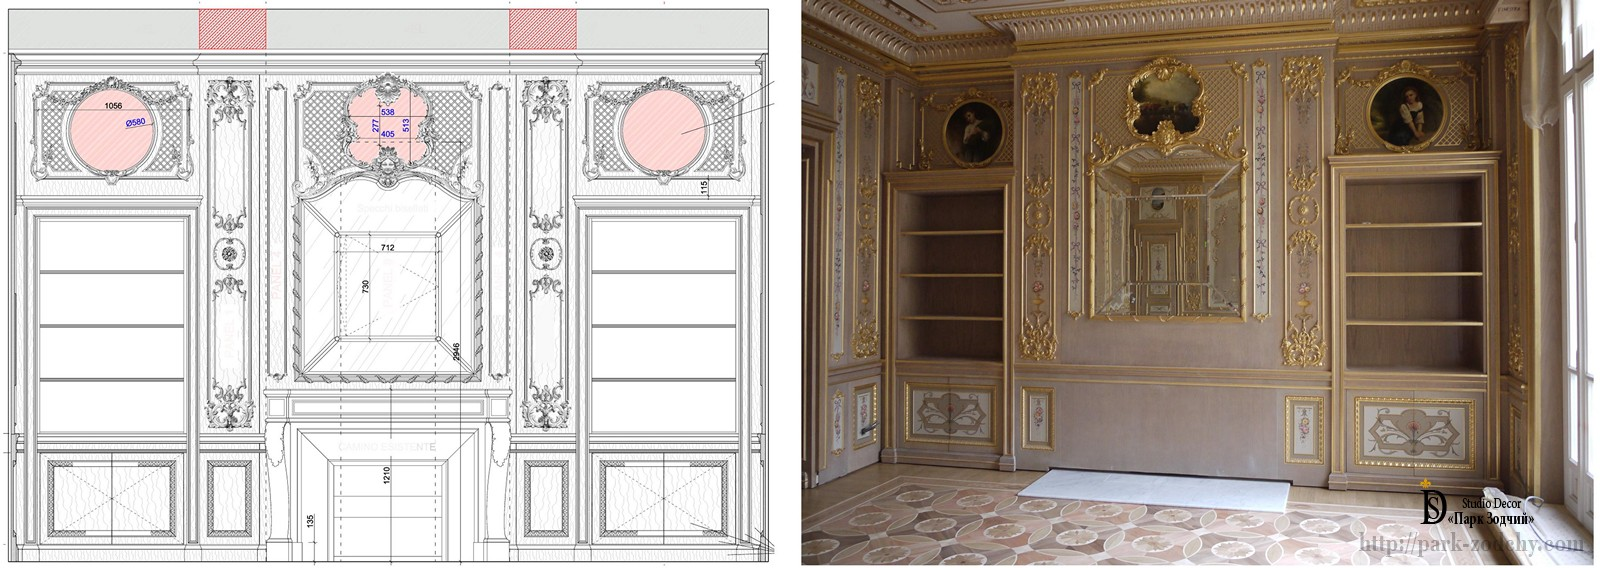 The design of the walls in boiserie photo